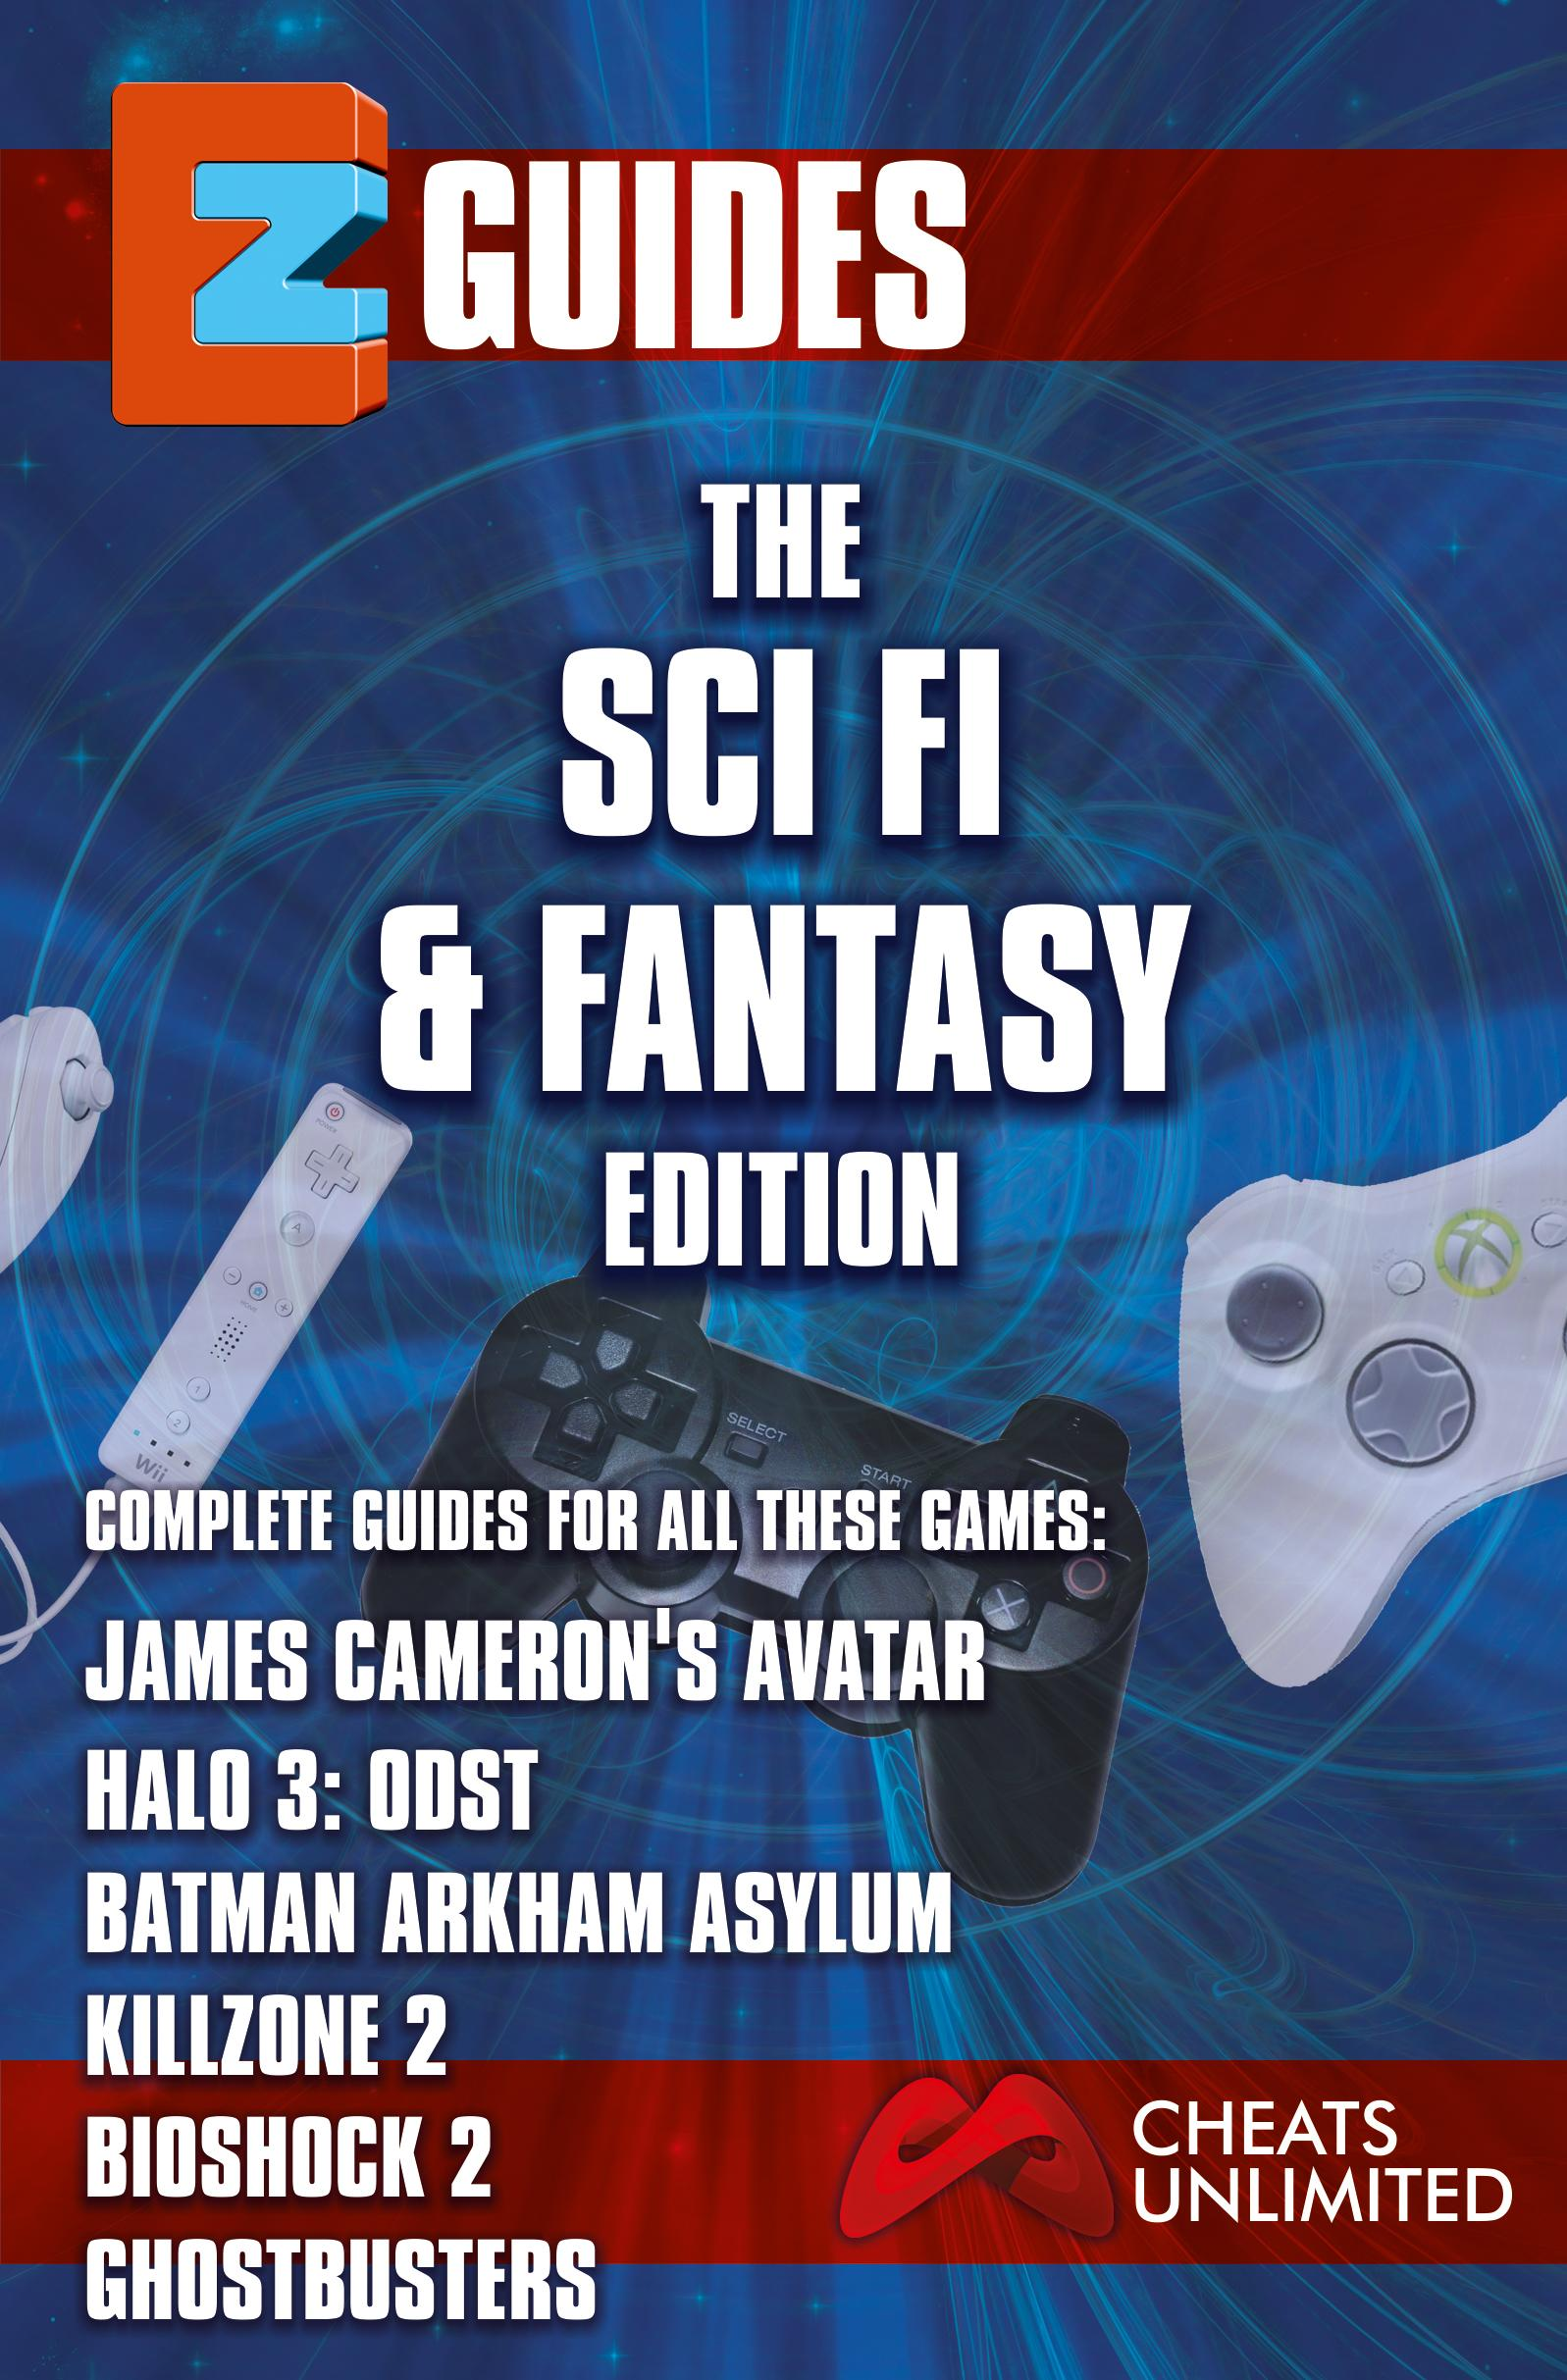 EZ Guides The Sci-Fi / Fantasy Edition EB2370002800174